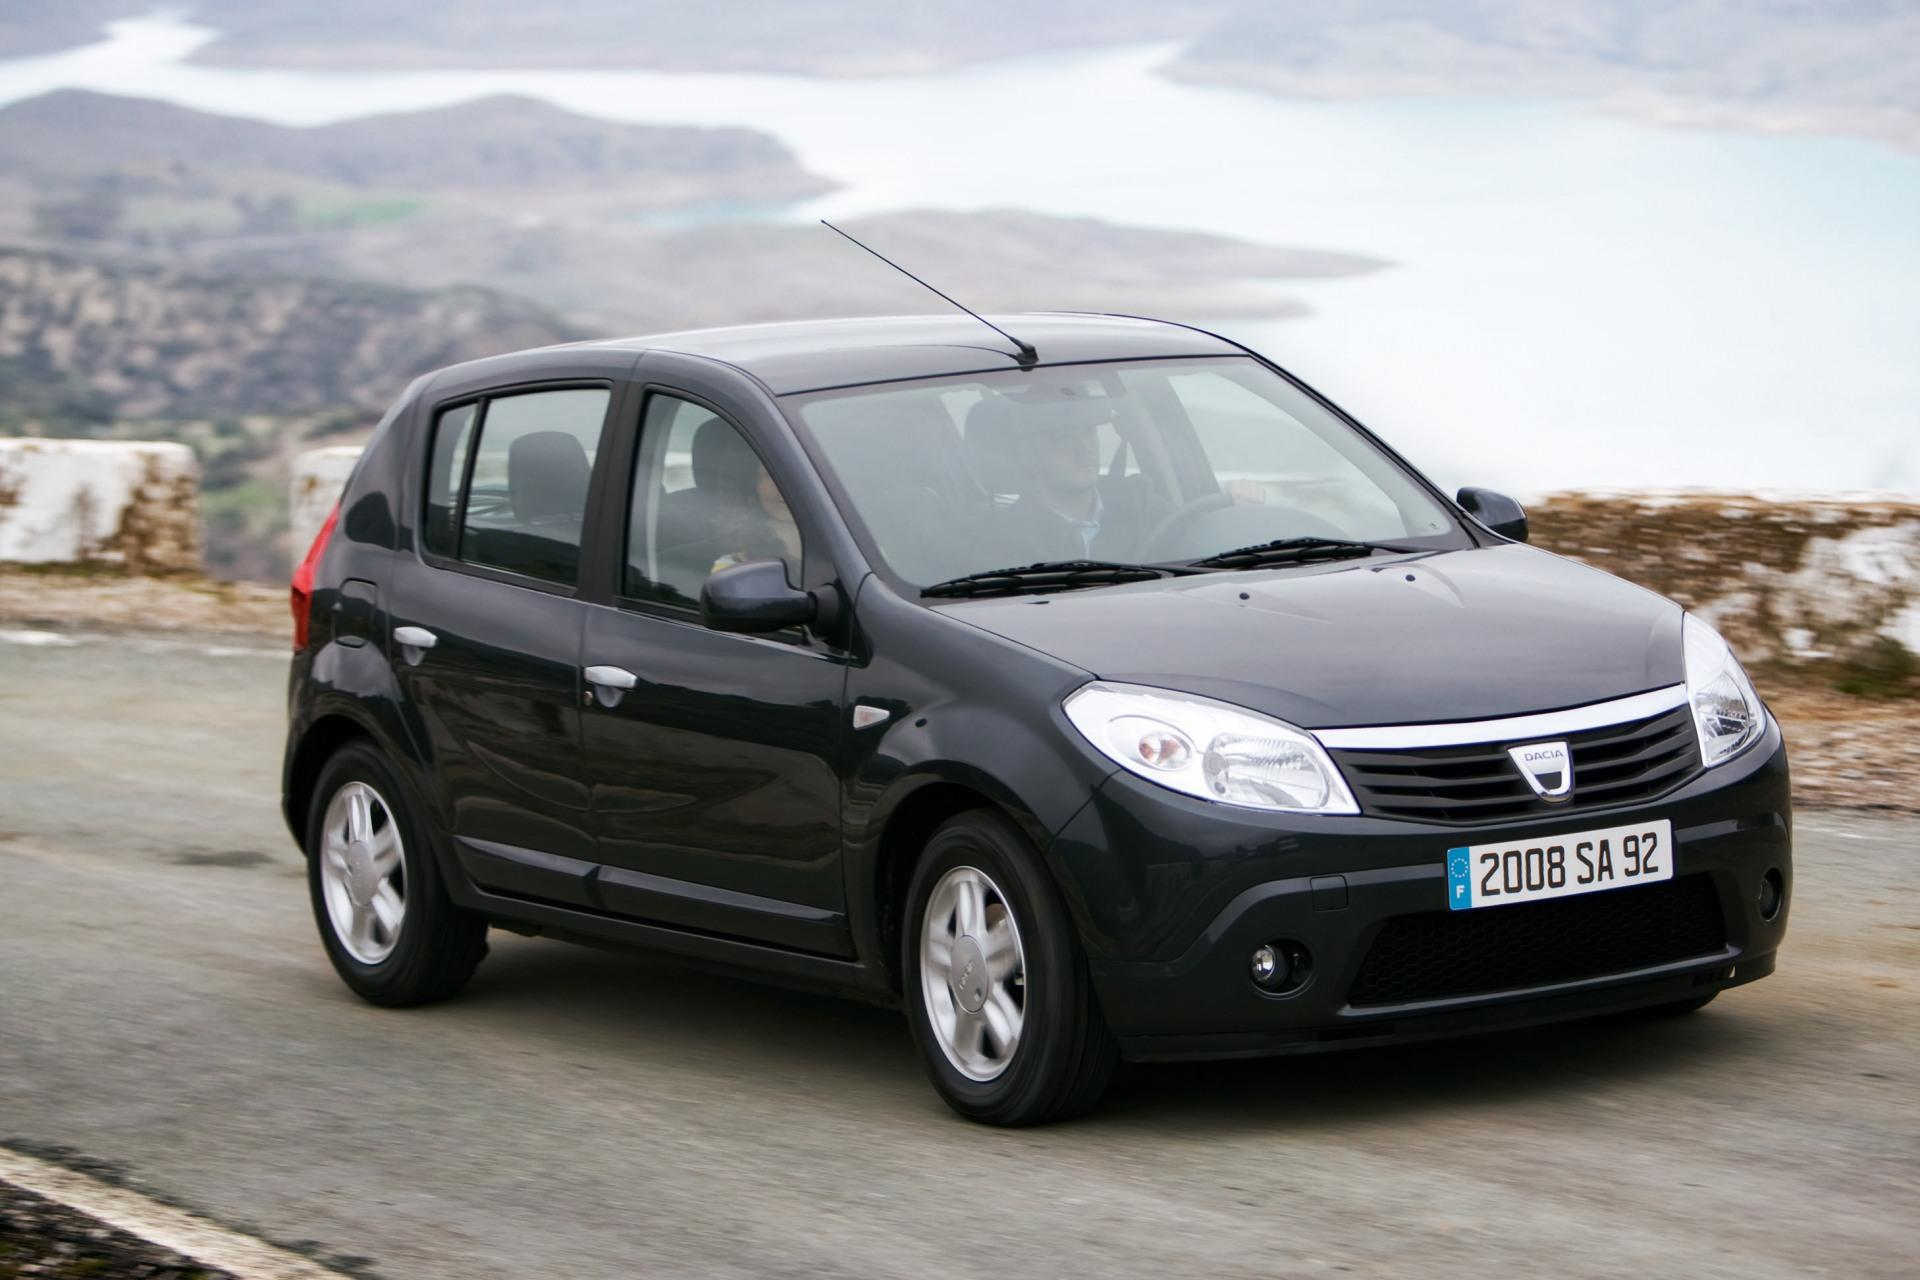 2009 dacia sandero news and information. Black Bedroom Furniture Sets. Home Design Ideas